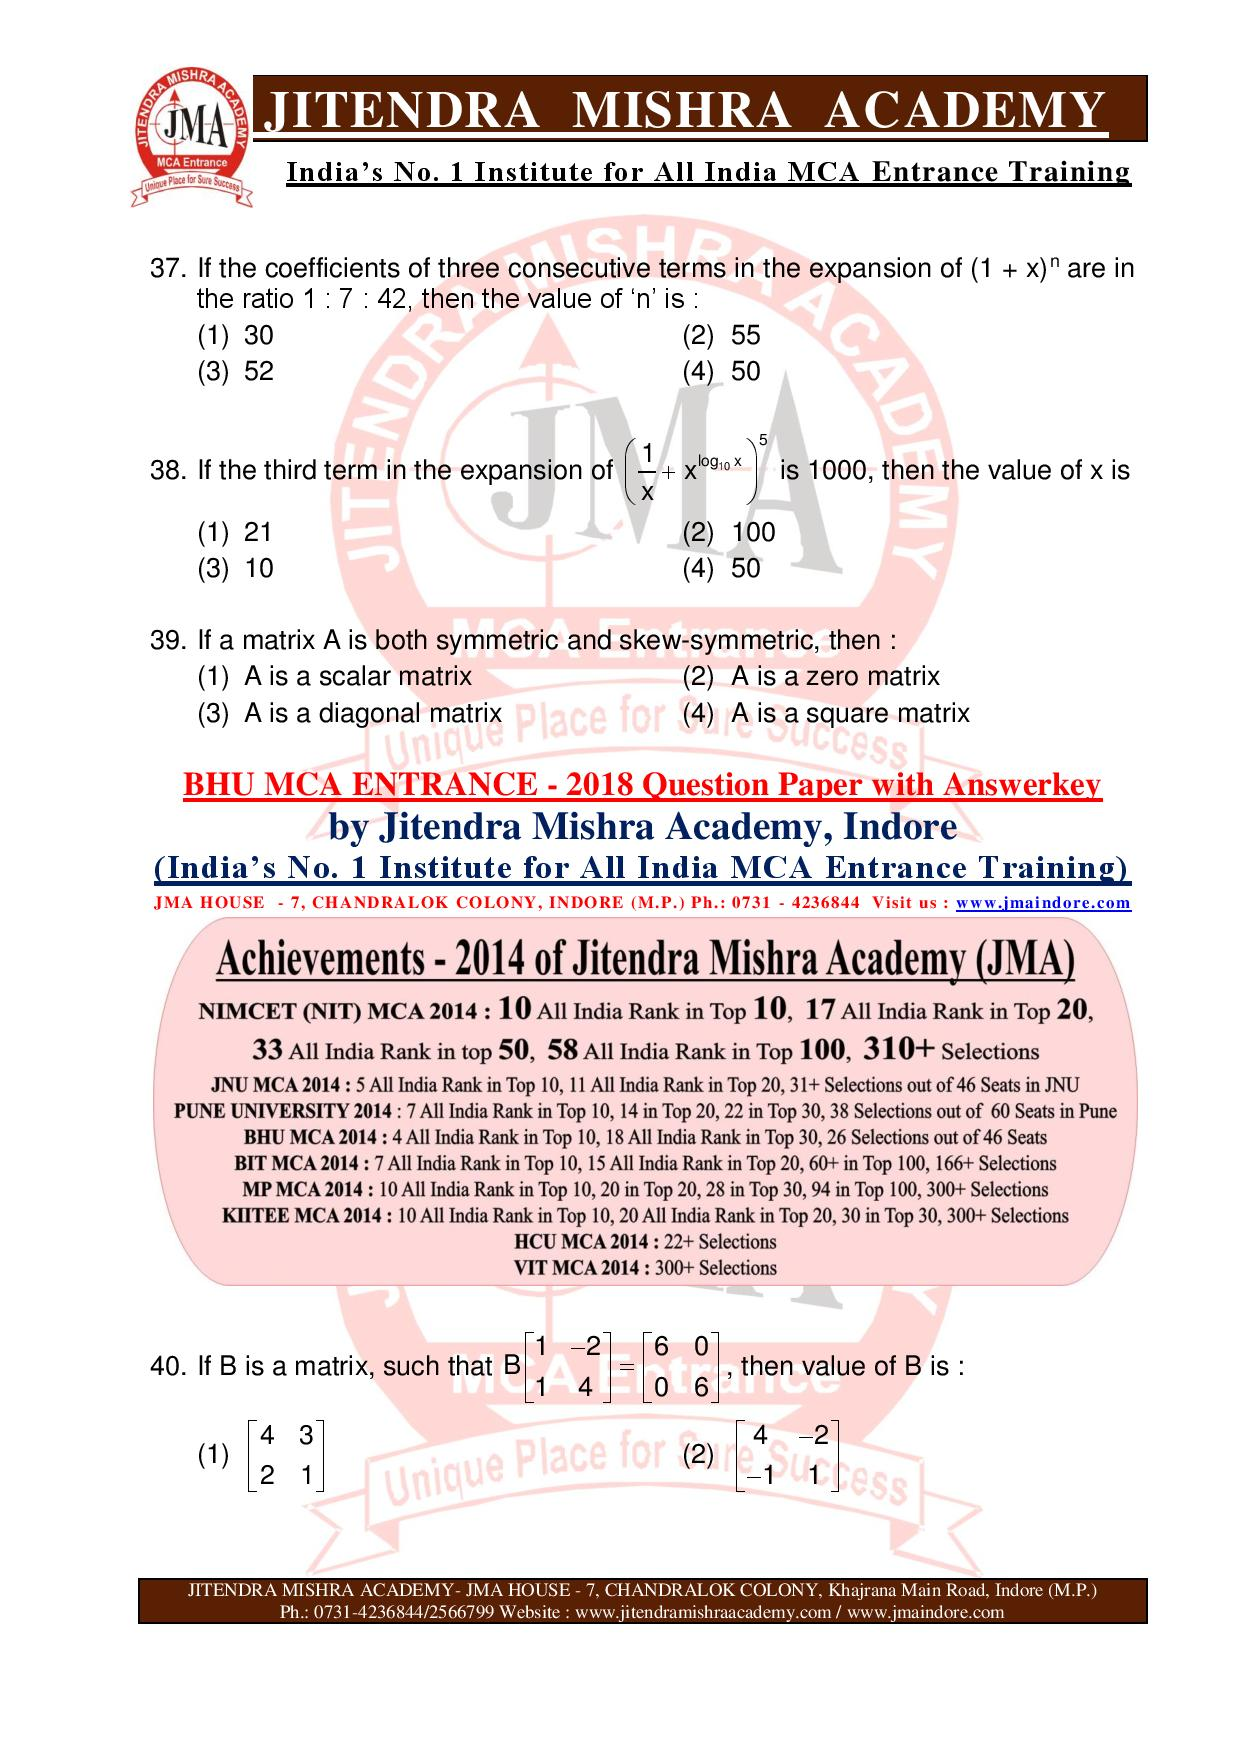 BHU MCA 2018 QUESTION PAPER12-page-012